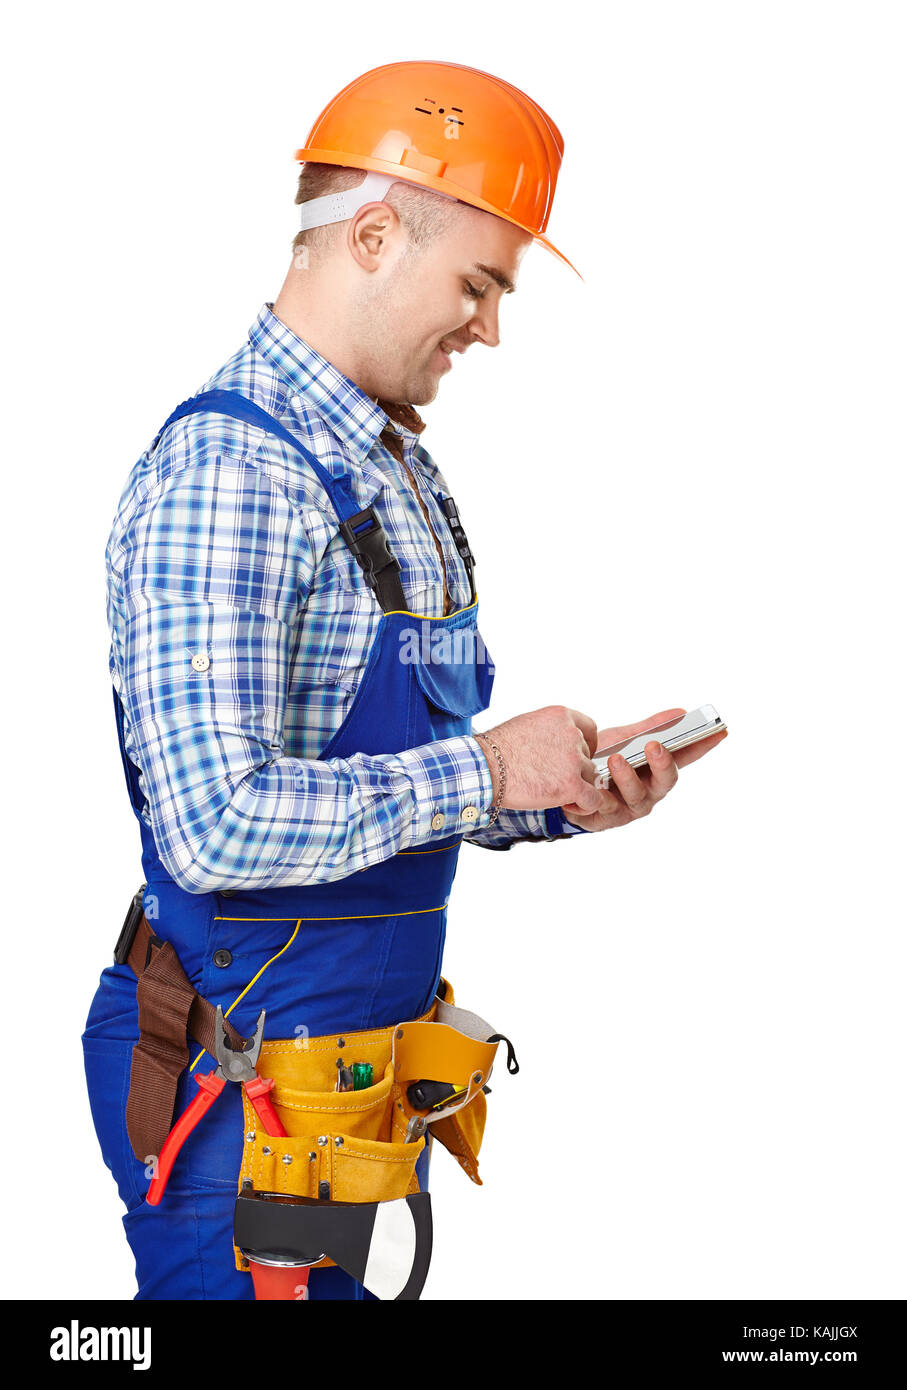 Side view portrait of young male construction worker with smartphone wearing protective clothes, helmet and tool - Stock Image